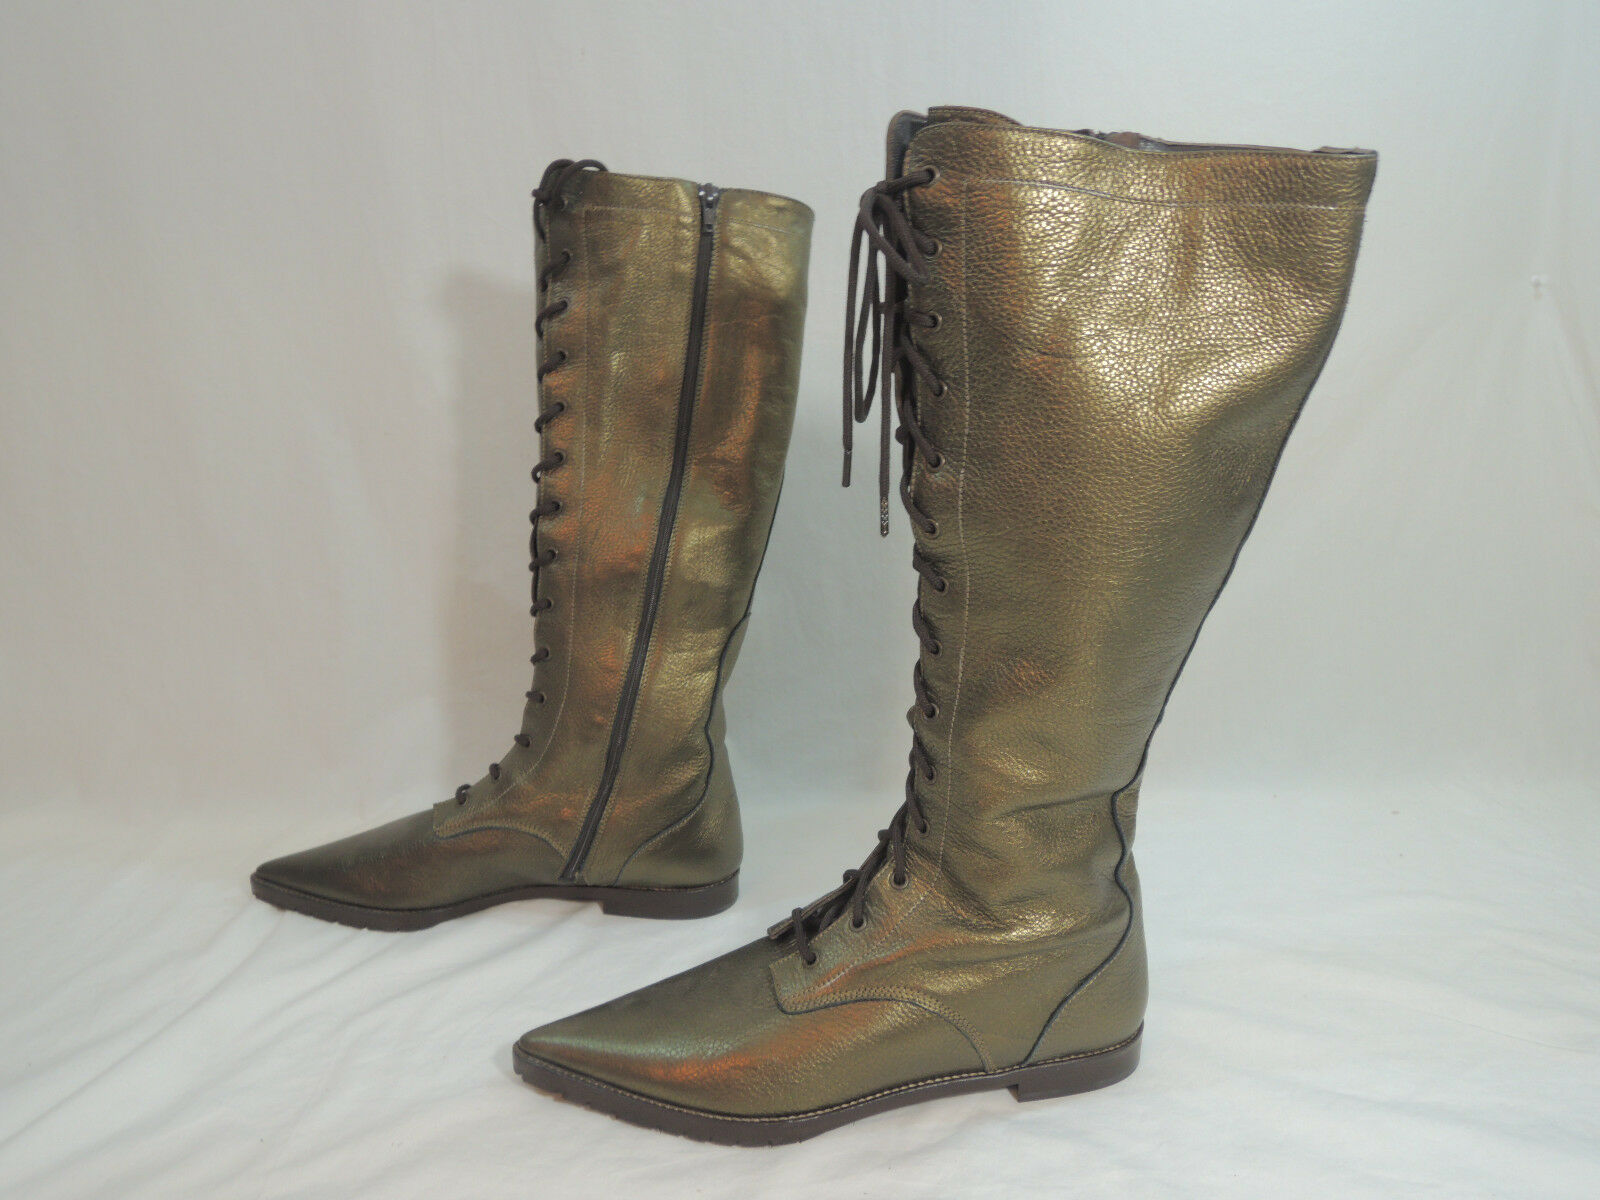 Charles Nolan Lisa Style Pointy Toe Leather Boots Size US 9.5-10 BRONZE